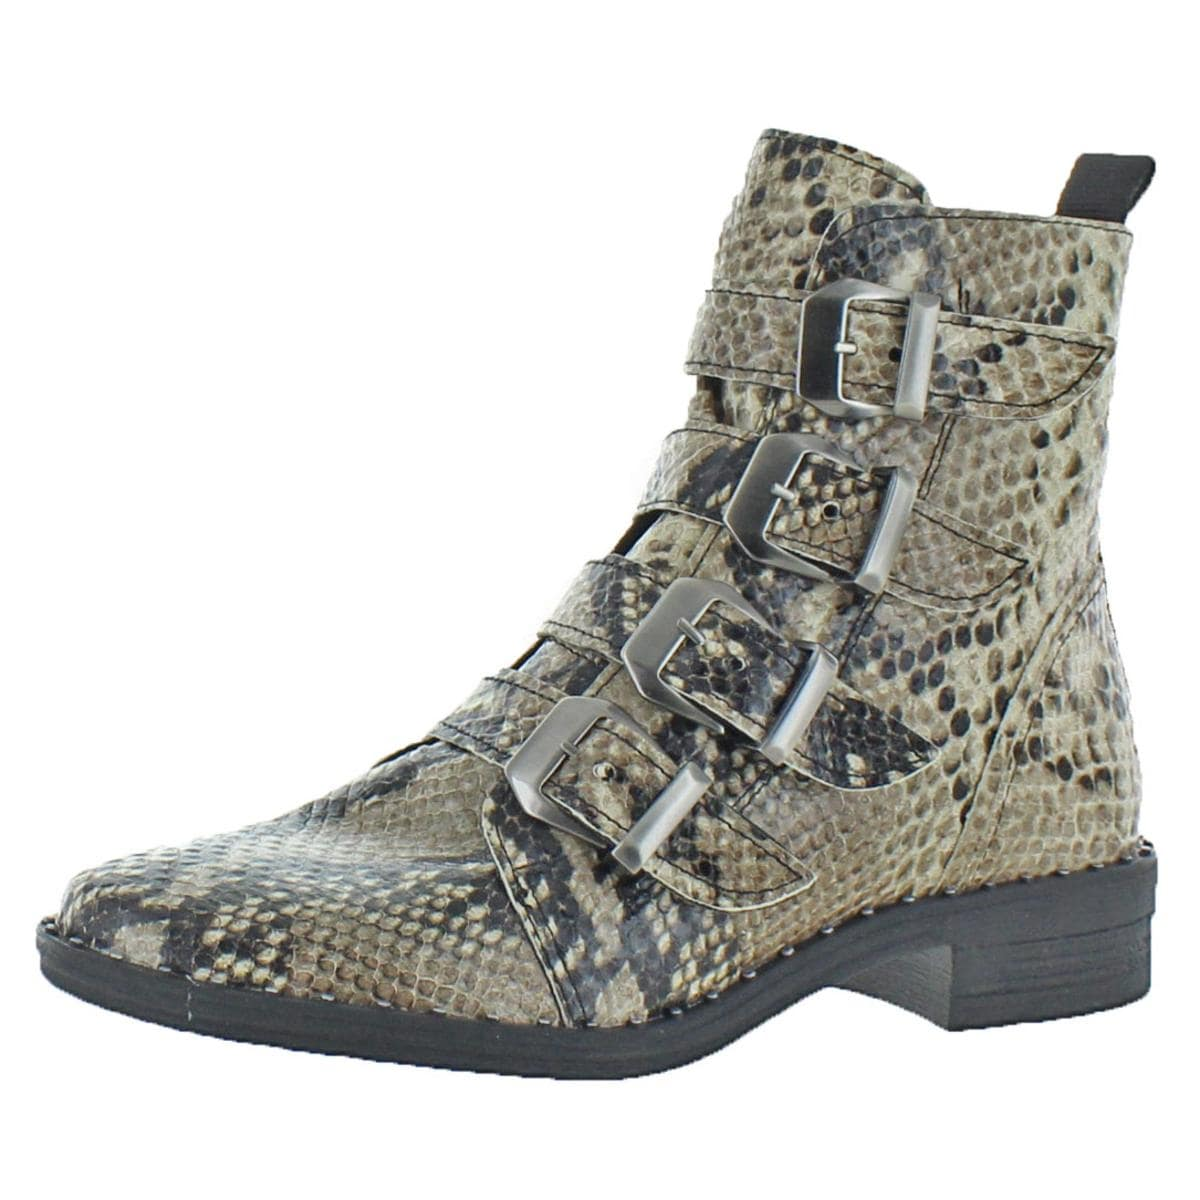 1a1bd3da48c Shop Steve Madden Womens Pursue Motorcycle Boots Buckle - Free Shipping On  Orders Over  45 - Overstock - 23903480